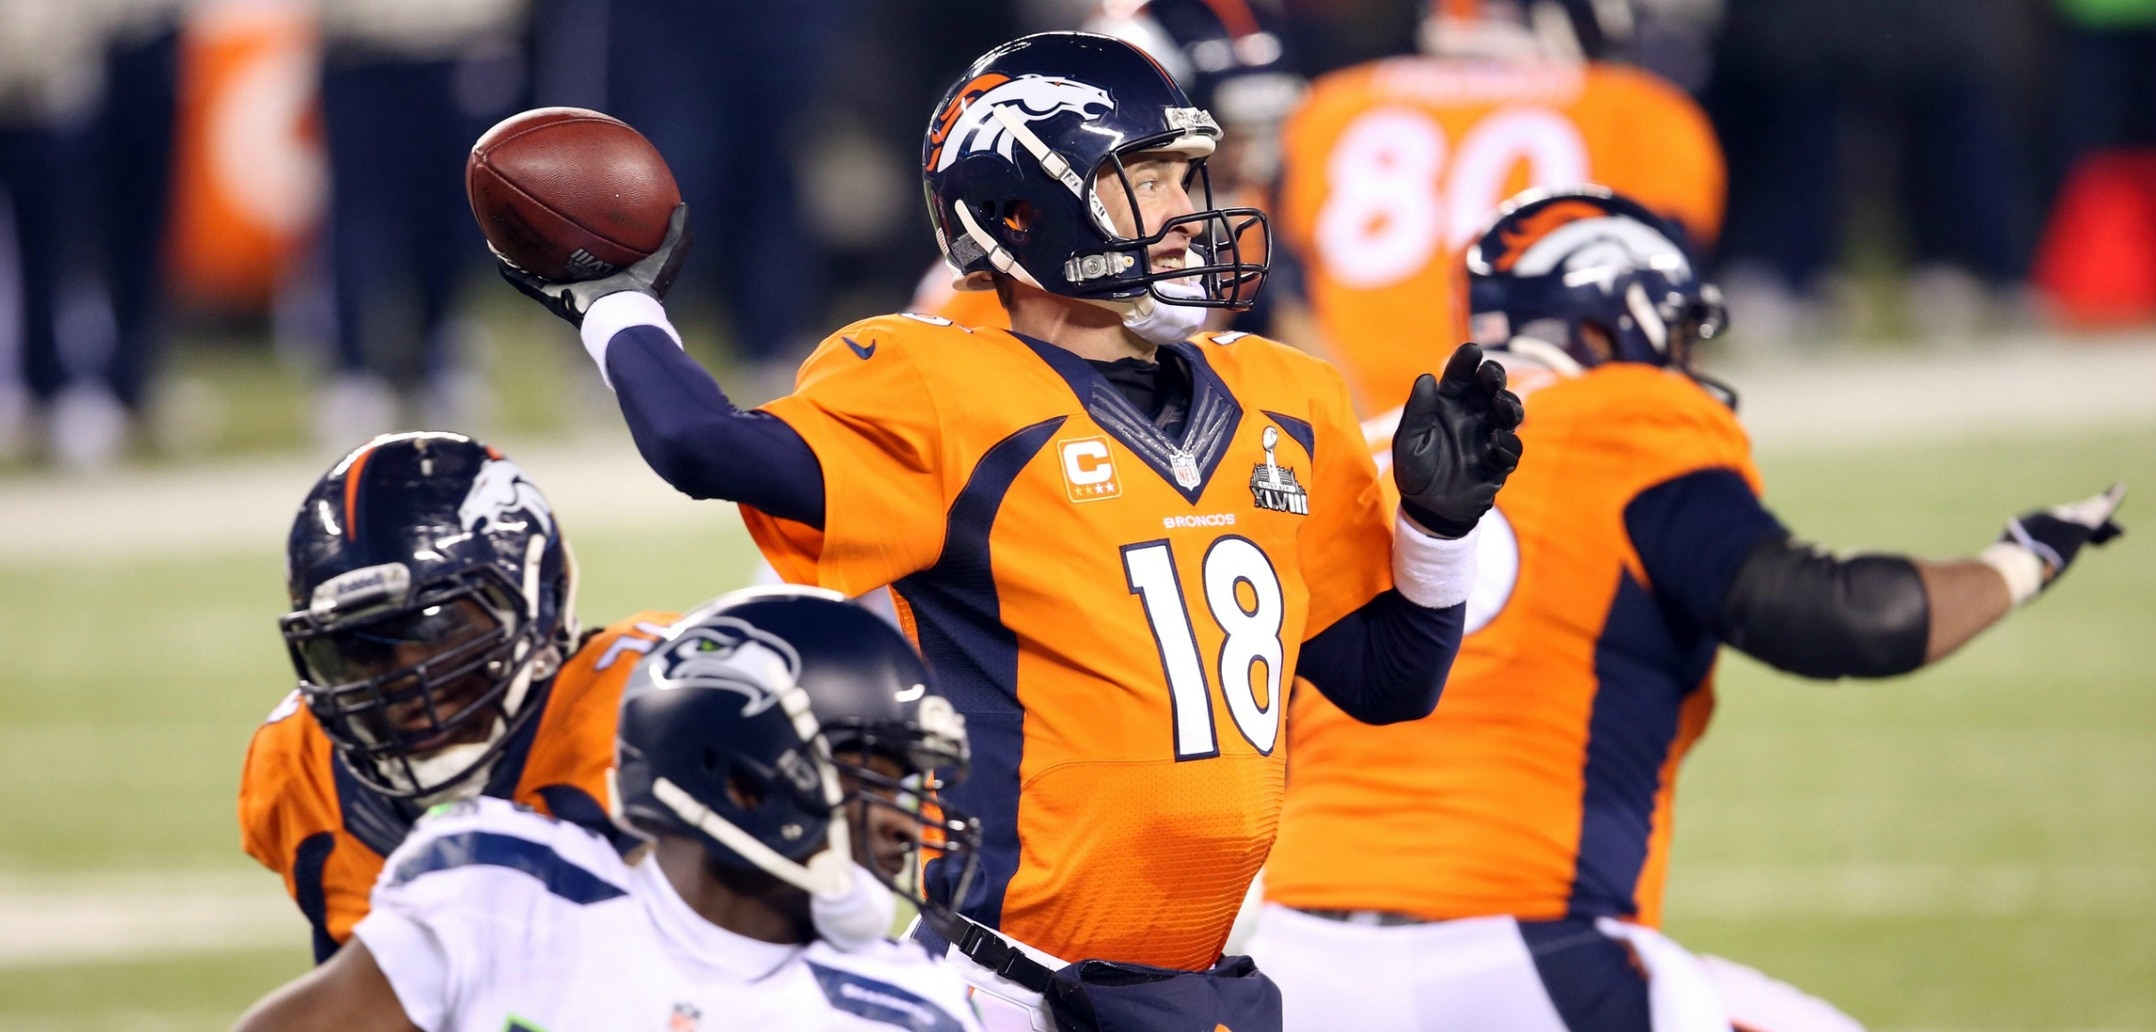 Courtesy of USA Today: Manning looks to rebound in his first meaningful game since the Super Bowl.